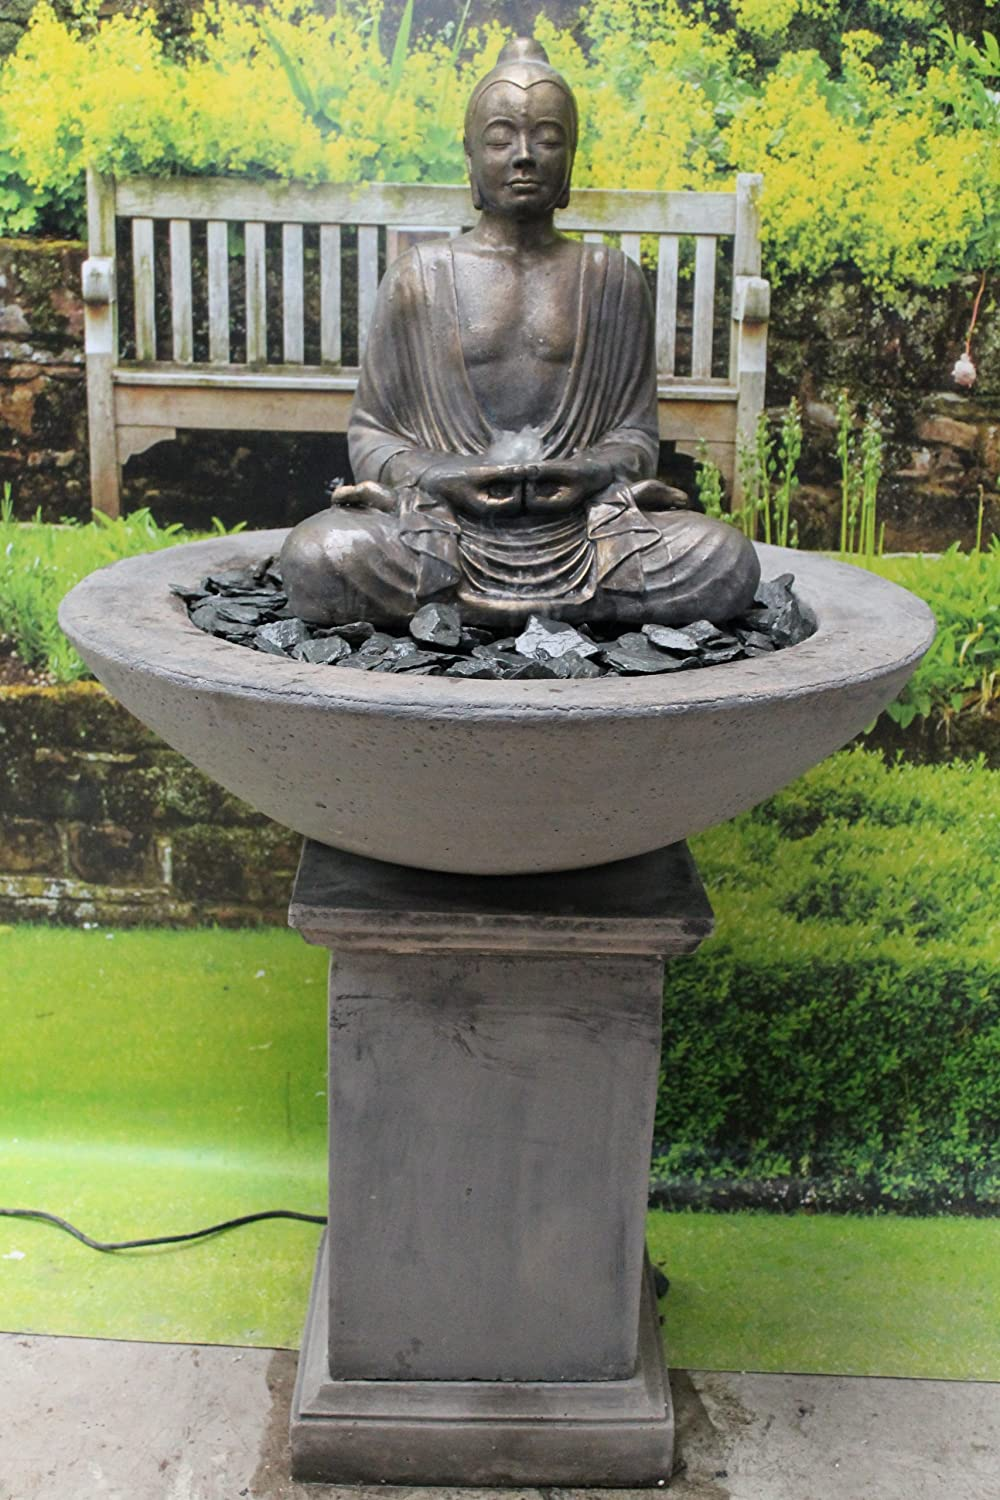 Tall Ornate Stone Buddha Patio Fountain Water Feature Garden Ornament